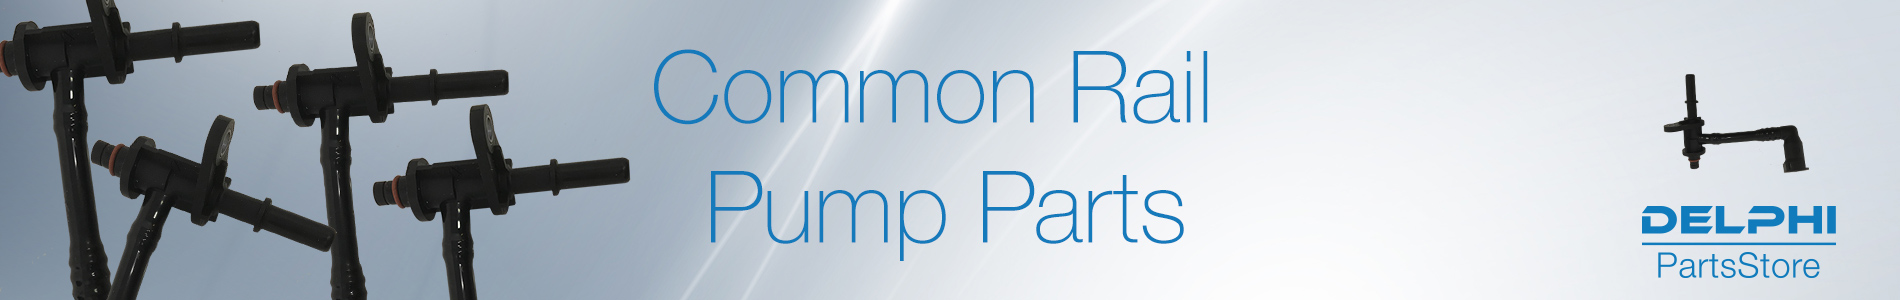 Common Rail Pump Parts